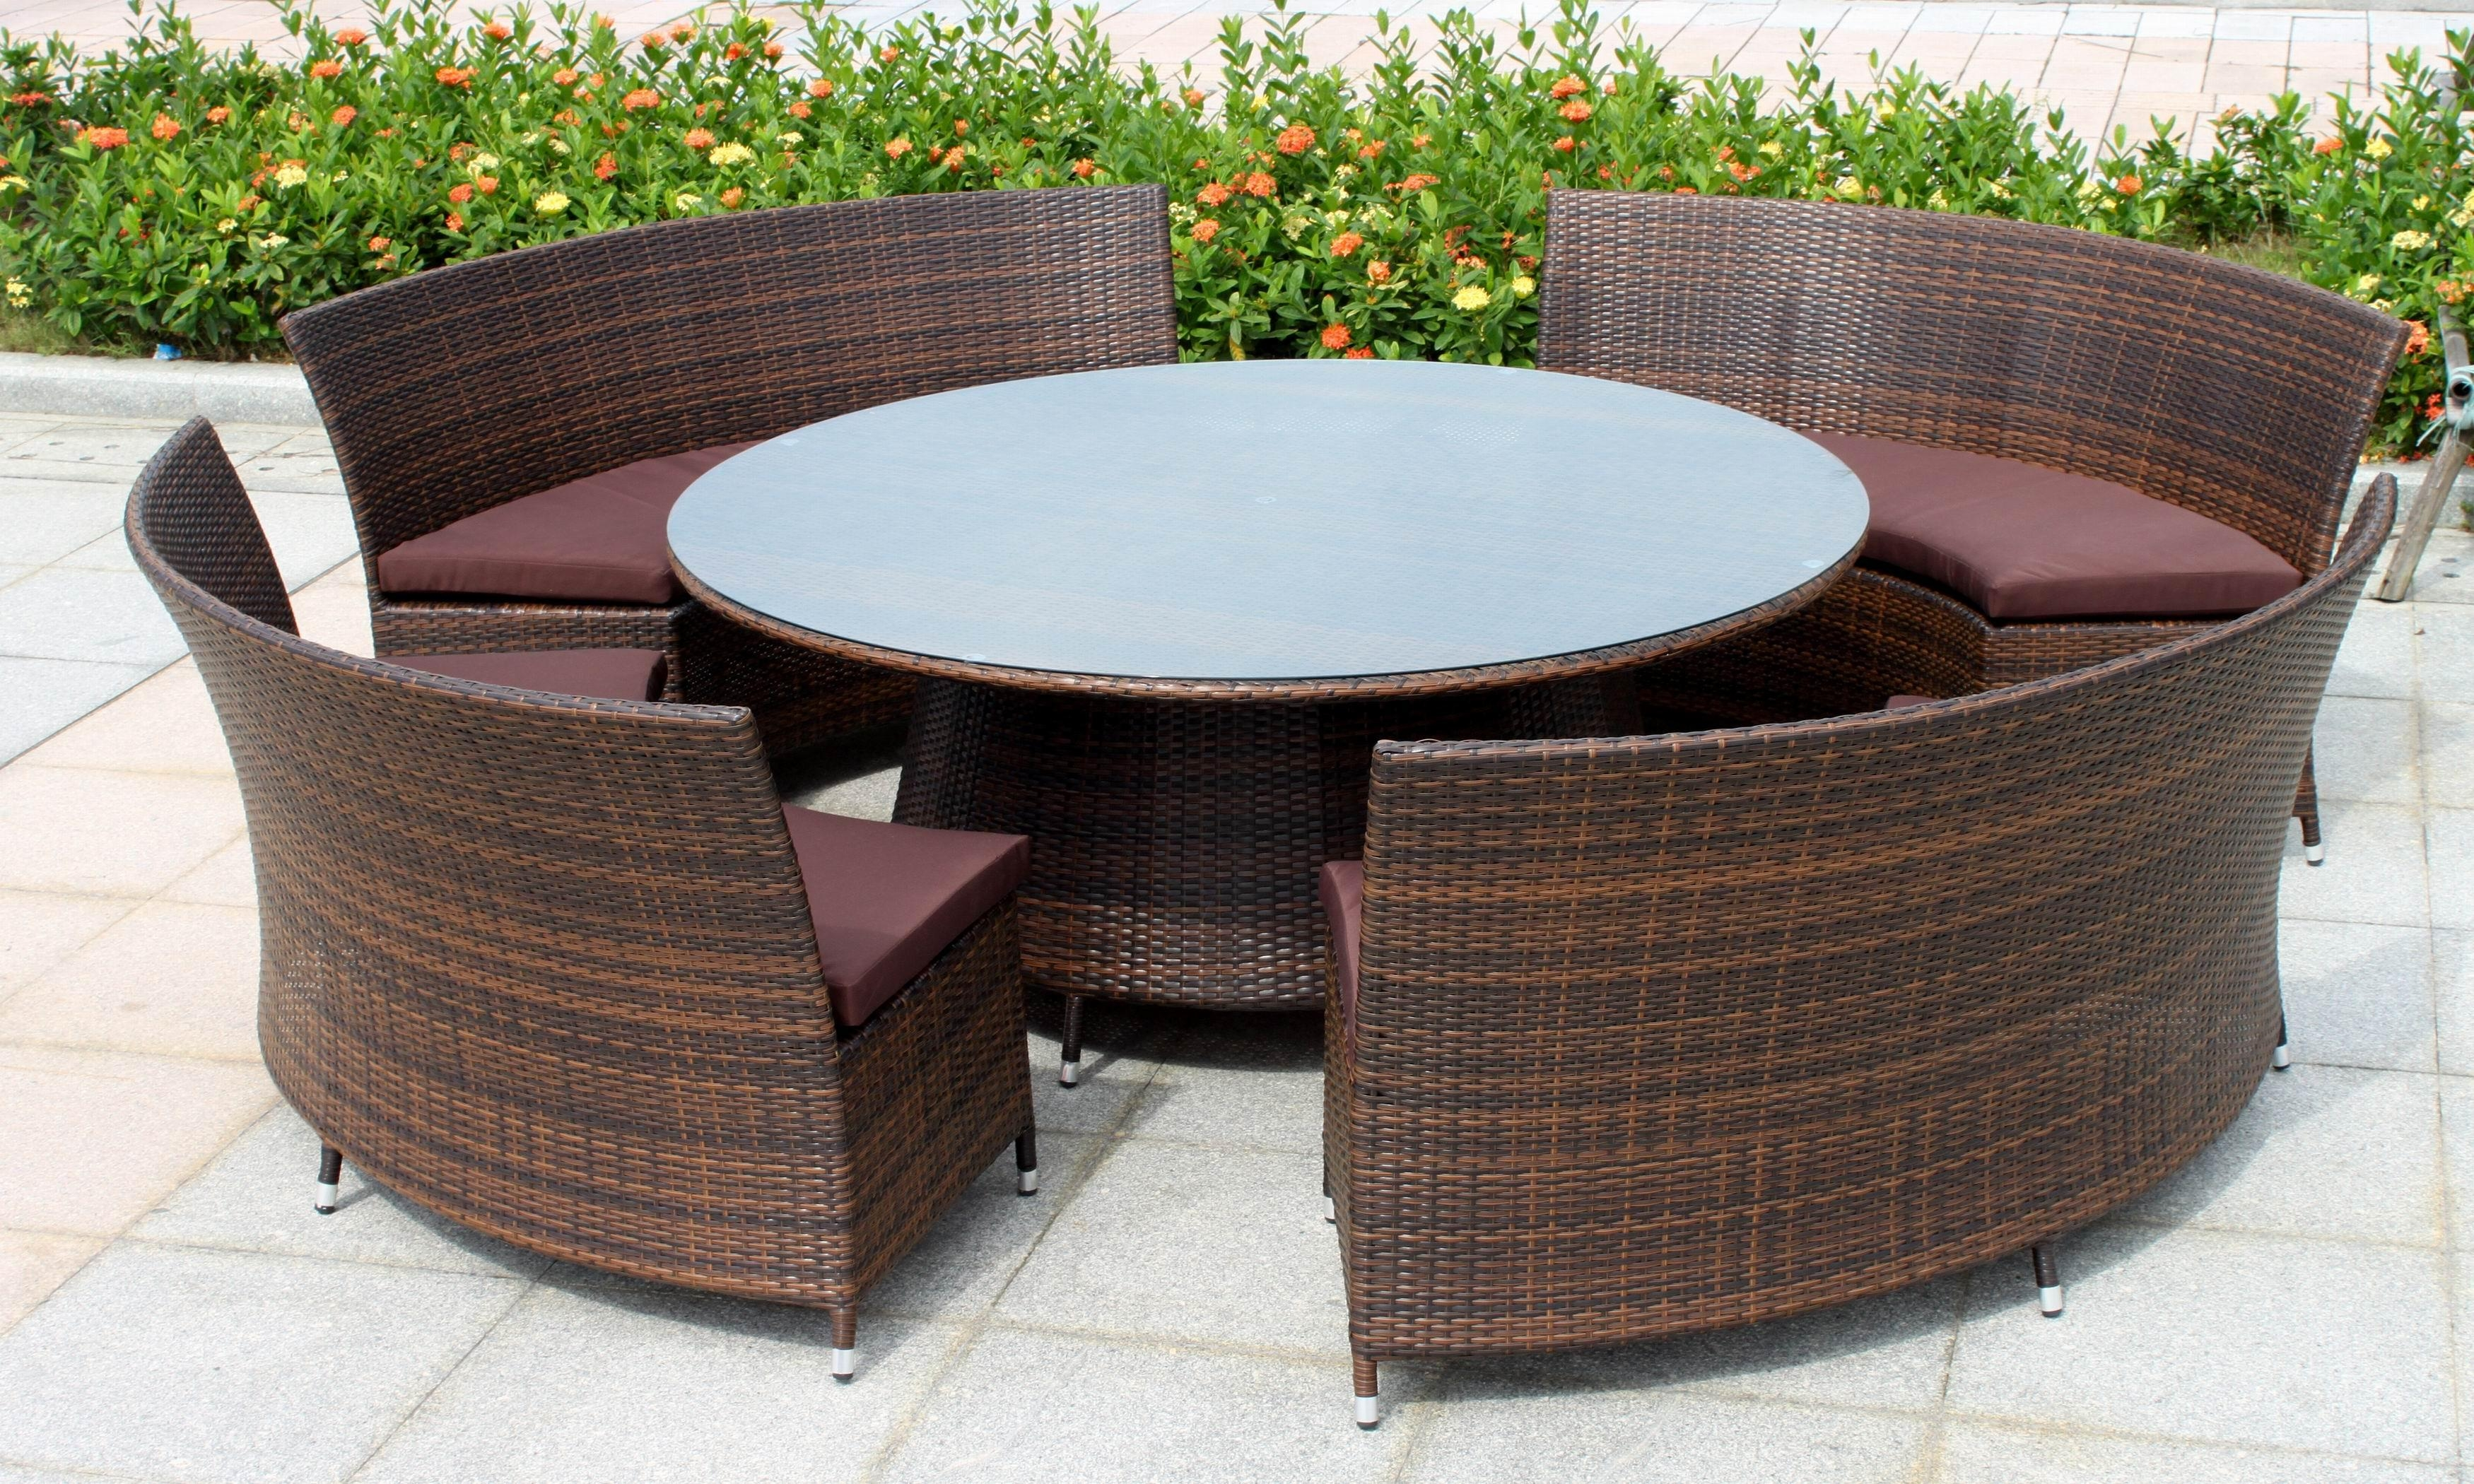 Modern Rattan Furniture And Outdoor Patio Sofas Image 16 Of 24 For Modern Rattan Sofas (Image 11 of 23)